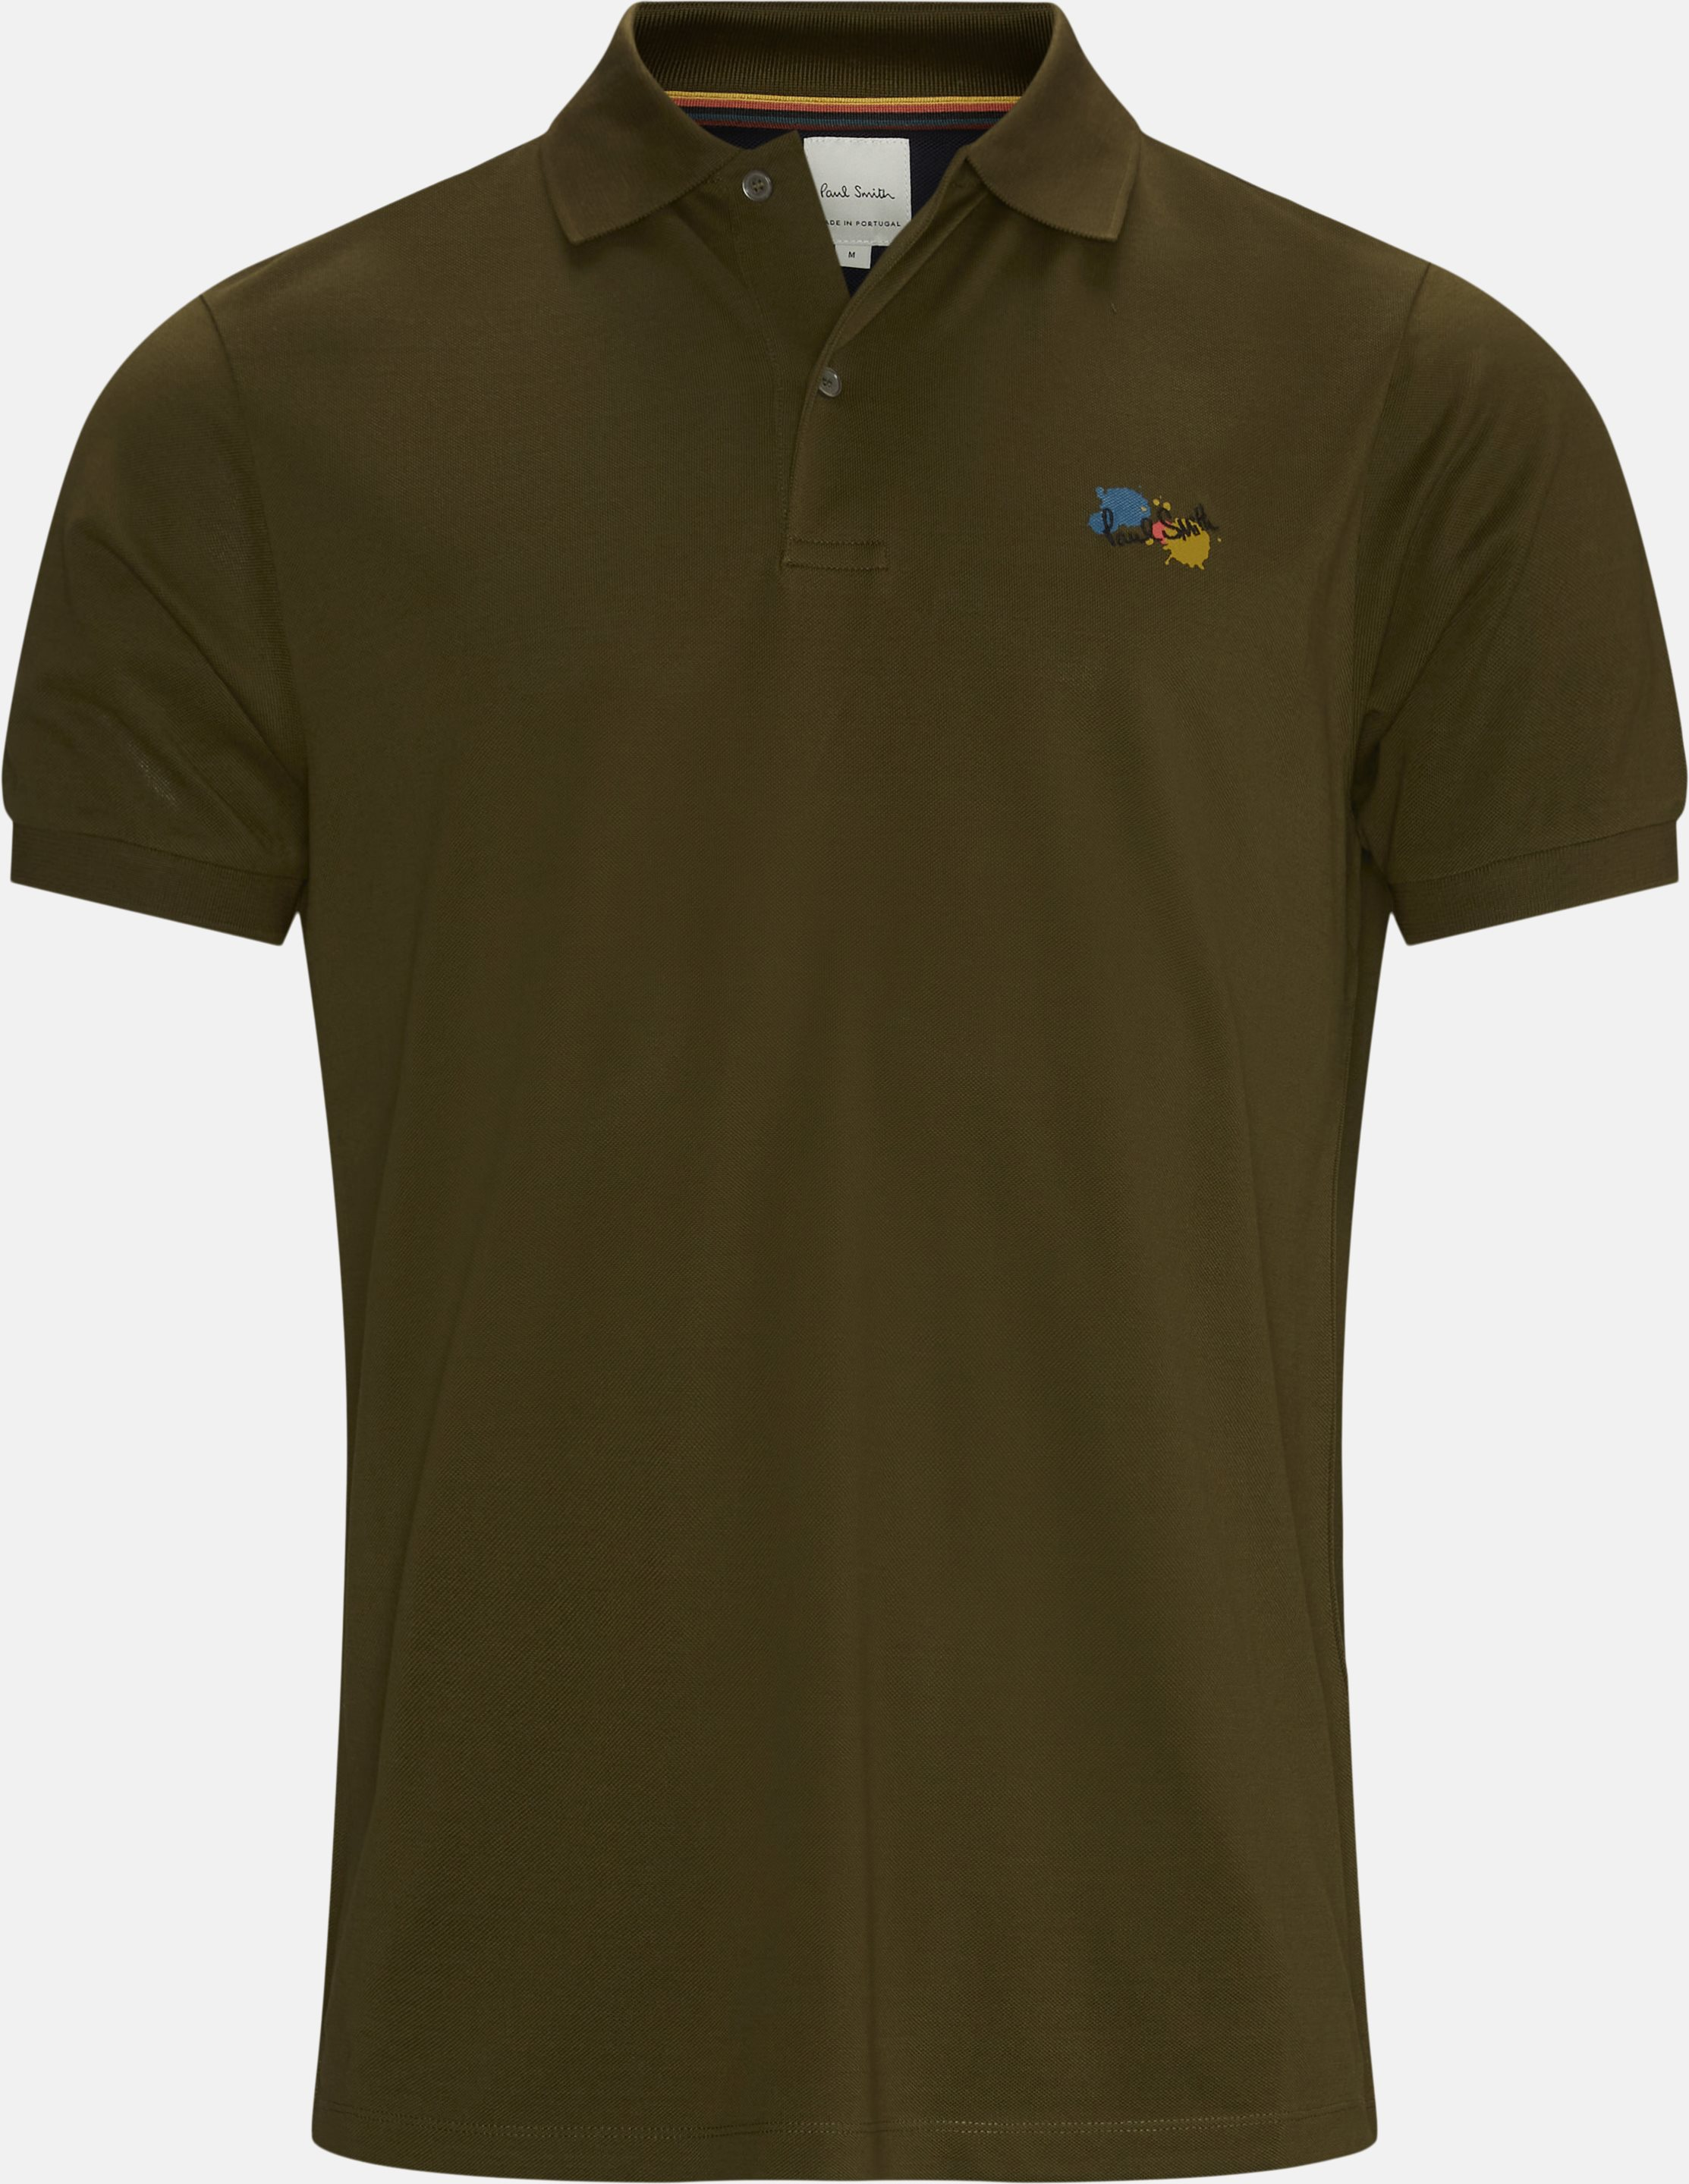 T-shirts - Regular fit - Army